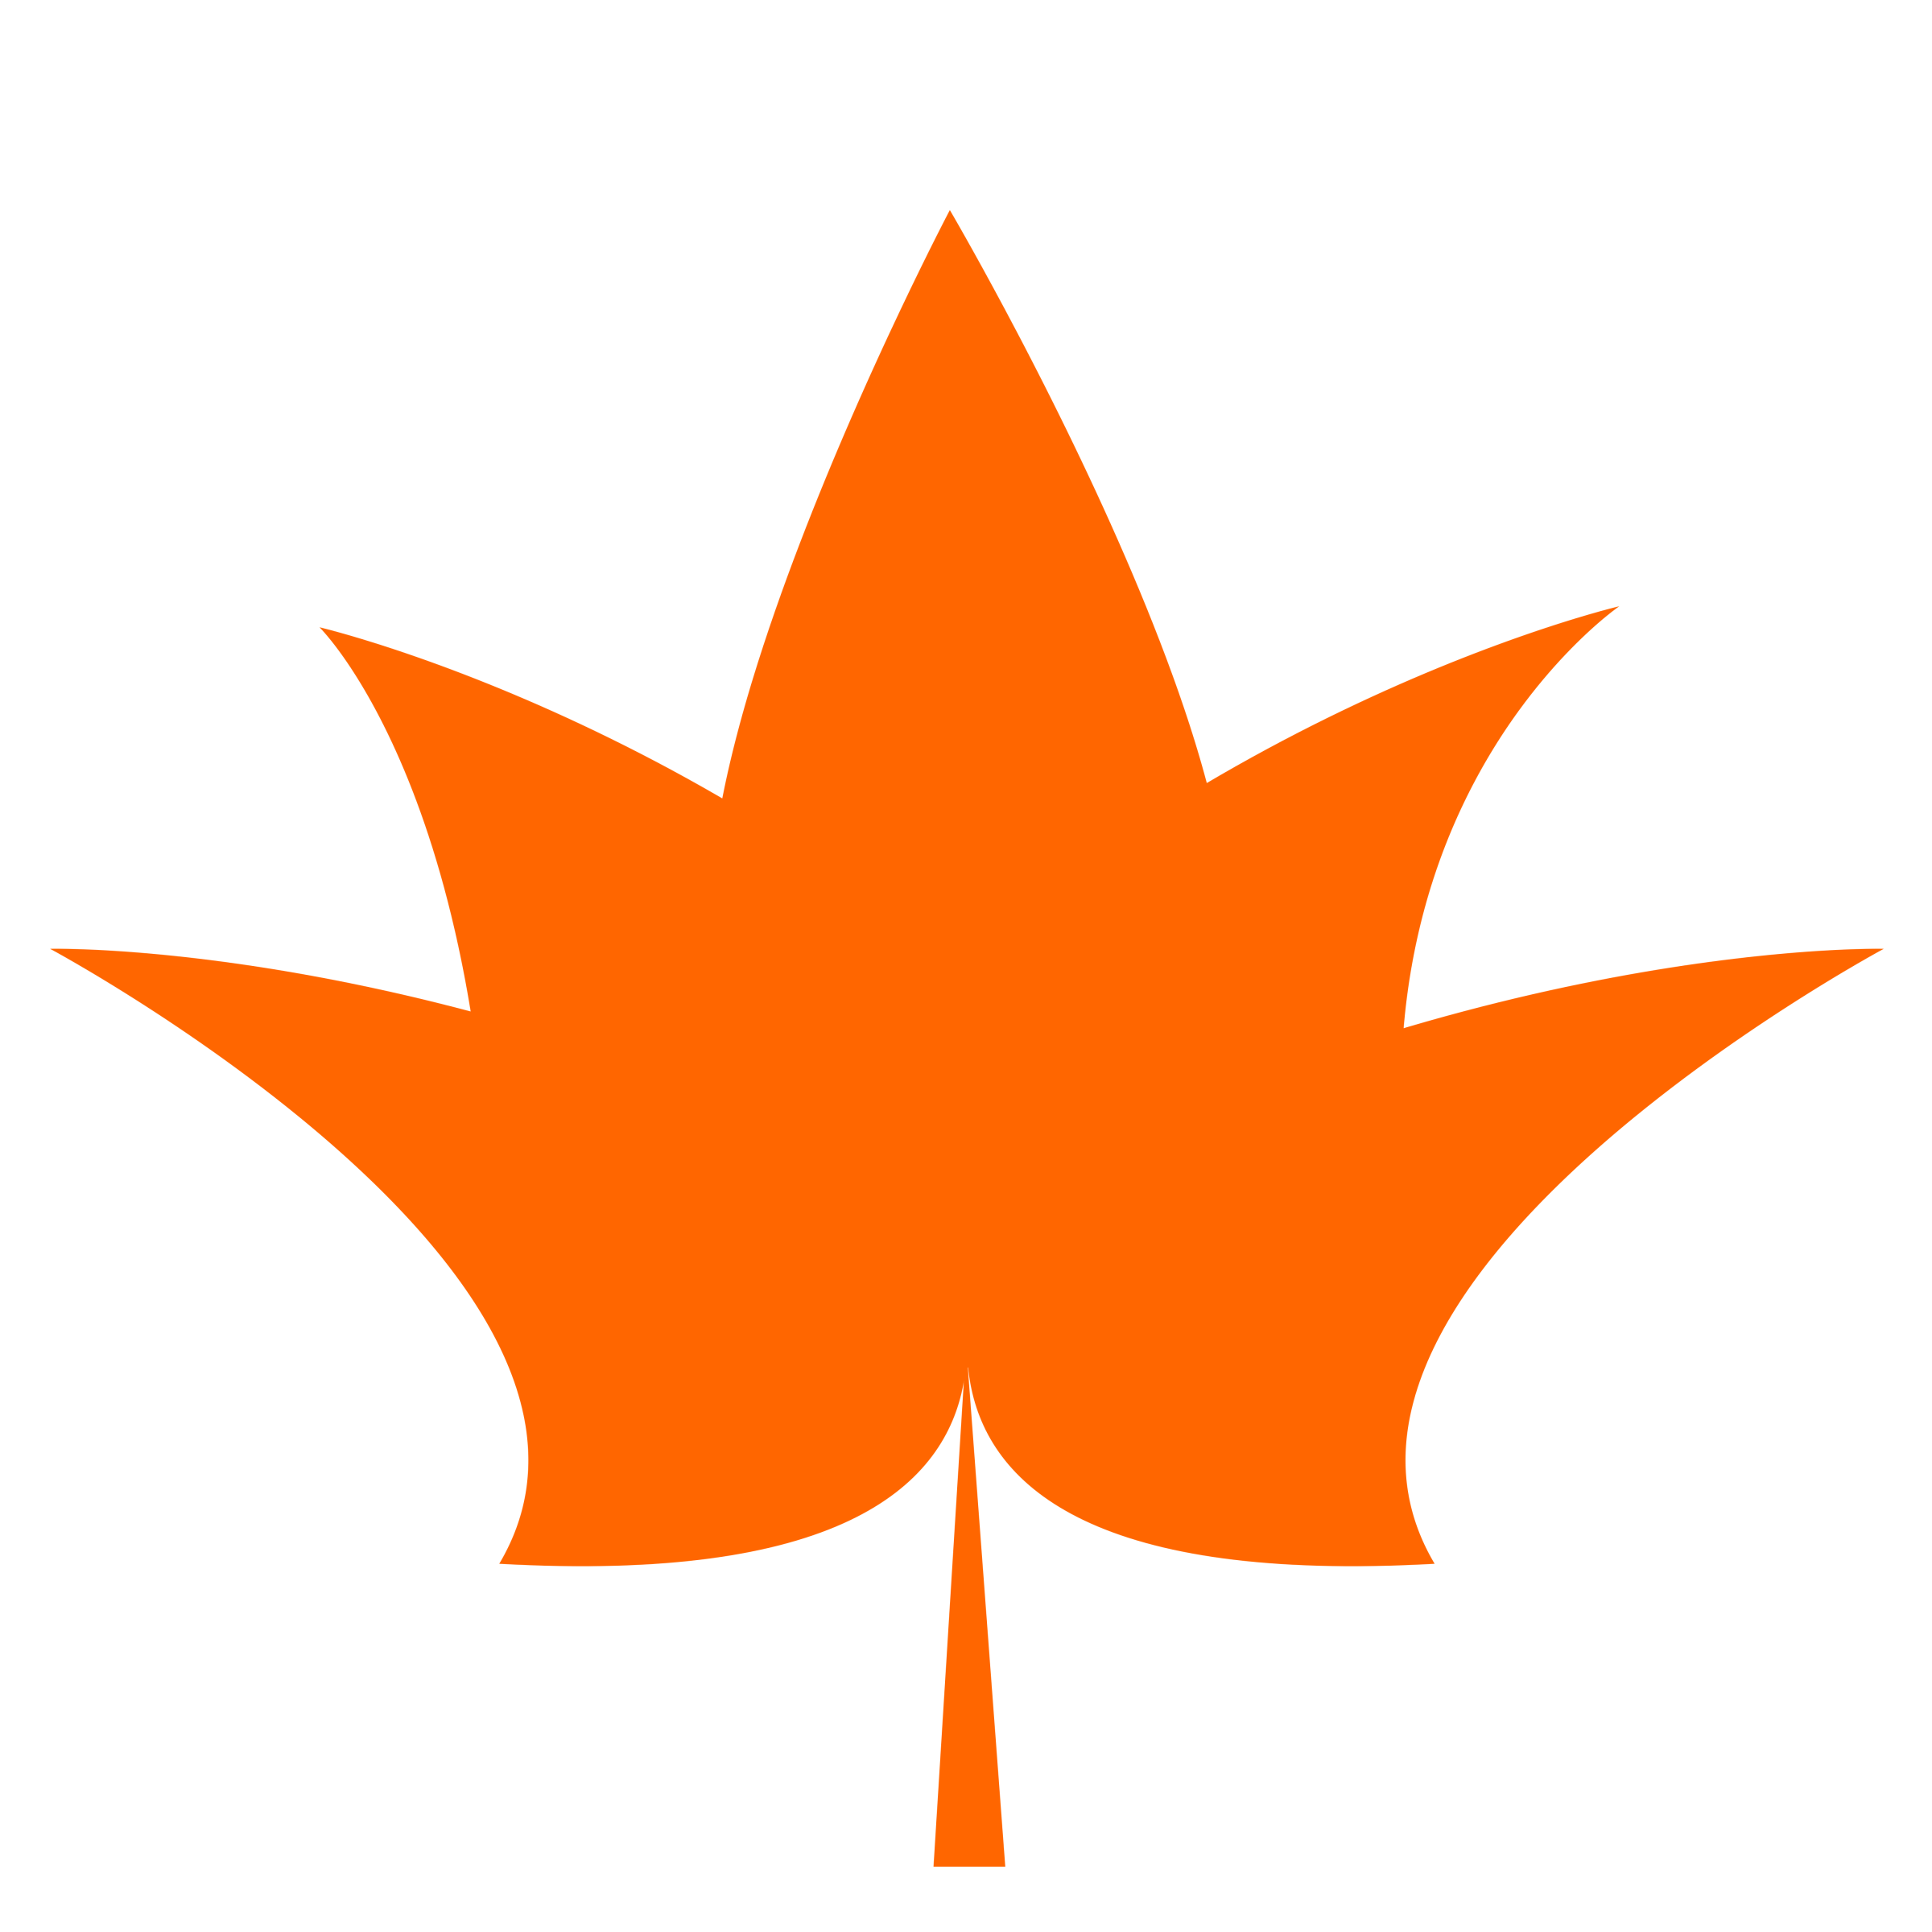 Clipart - Maple Leaf- one color- flat